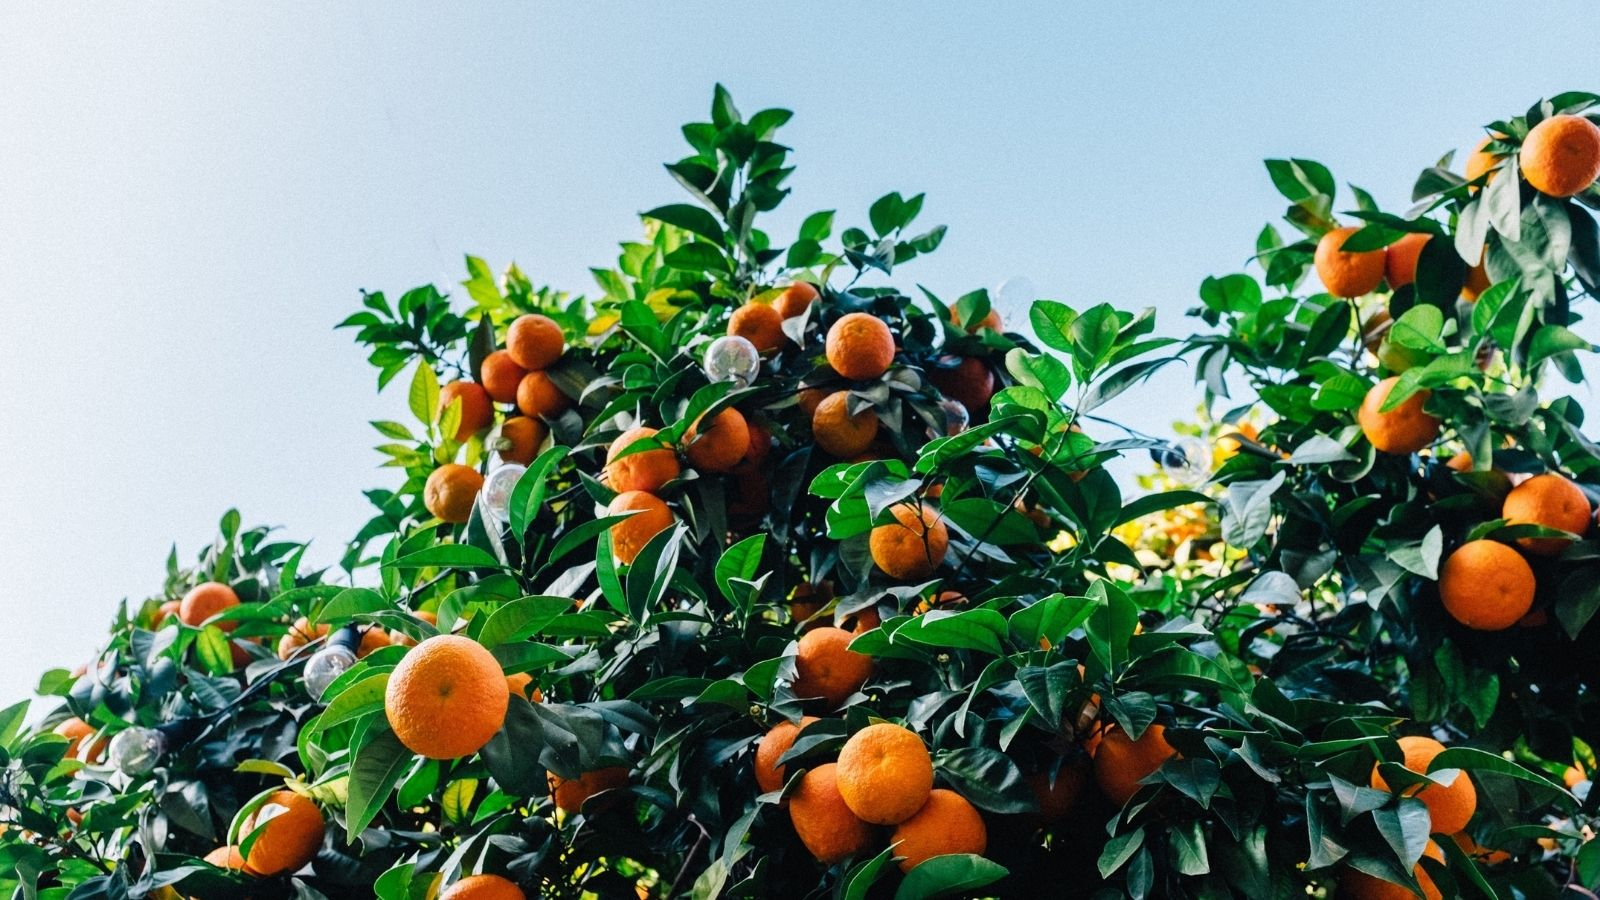 Clementines growing on a tree, sky in background